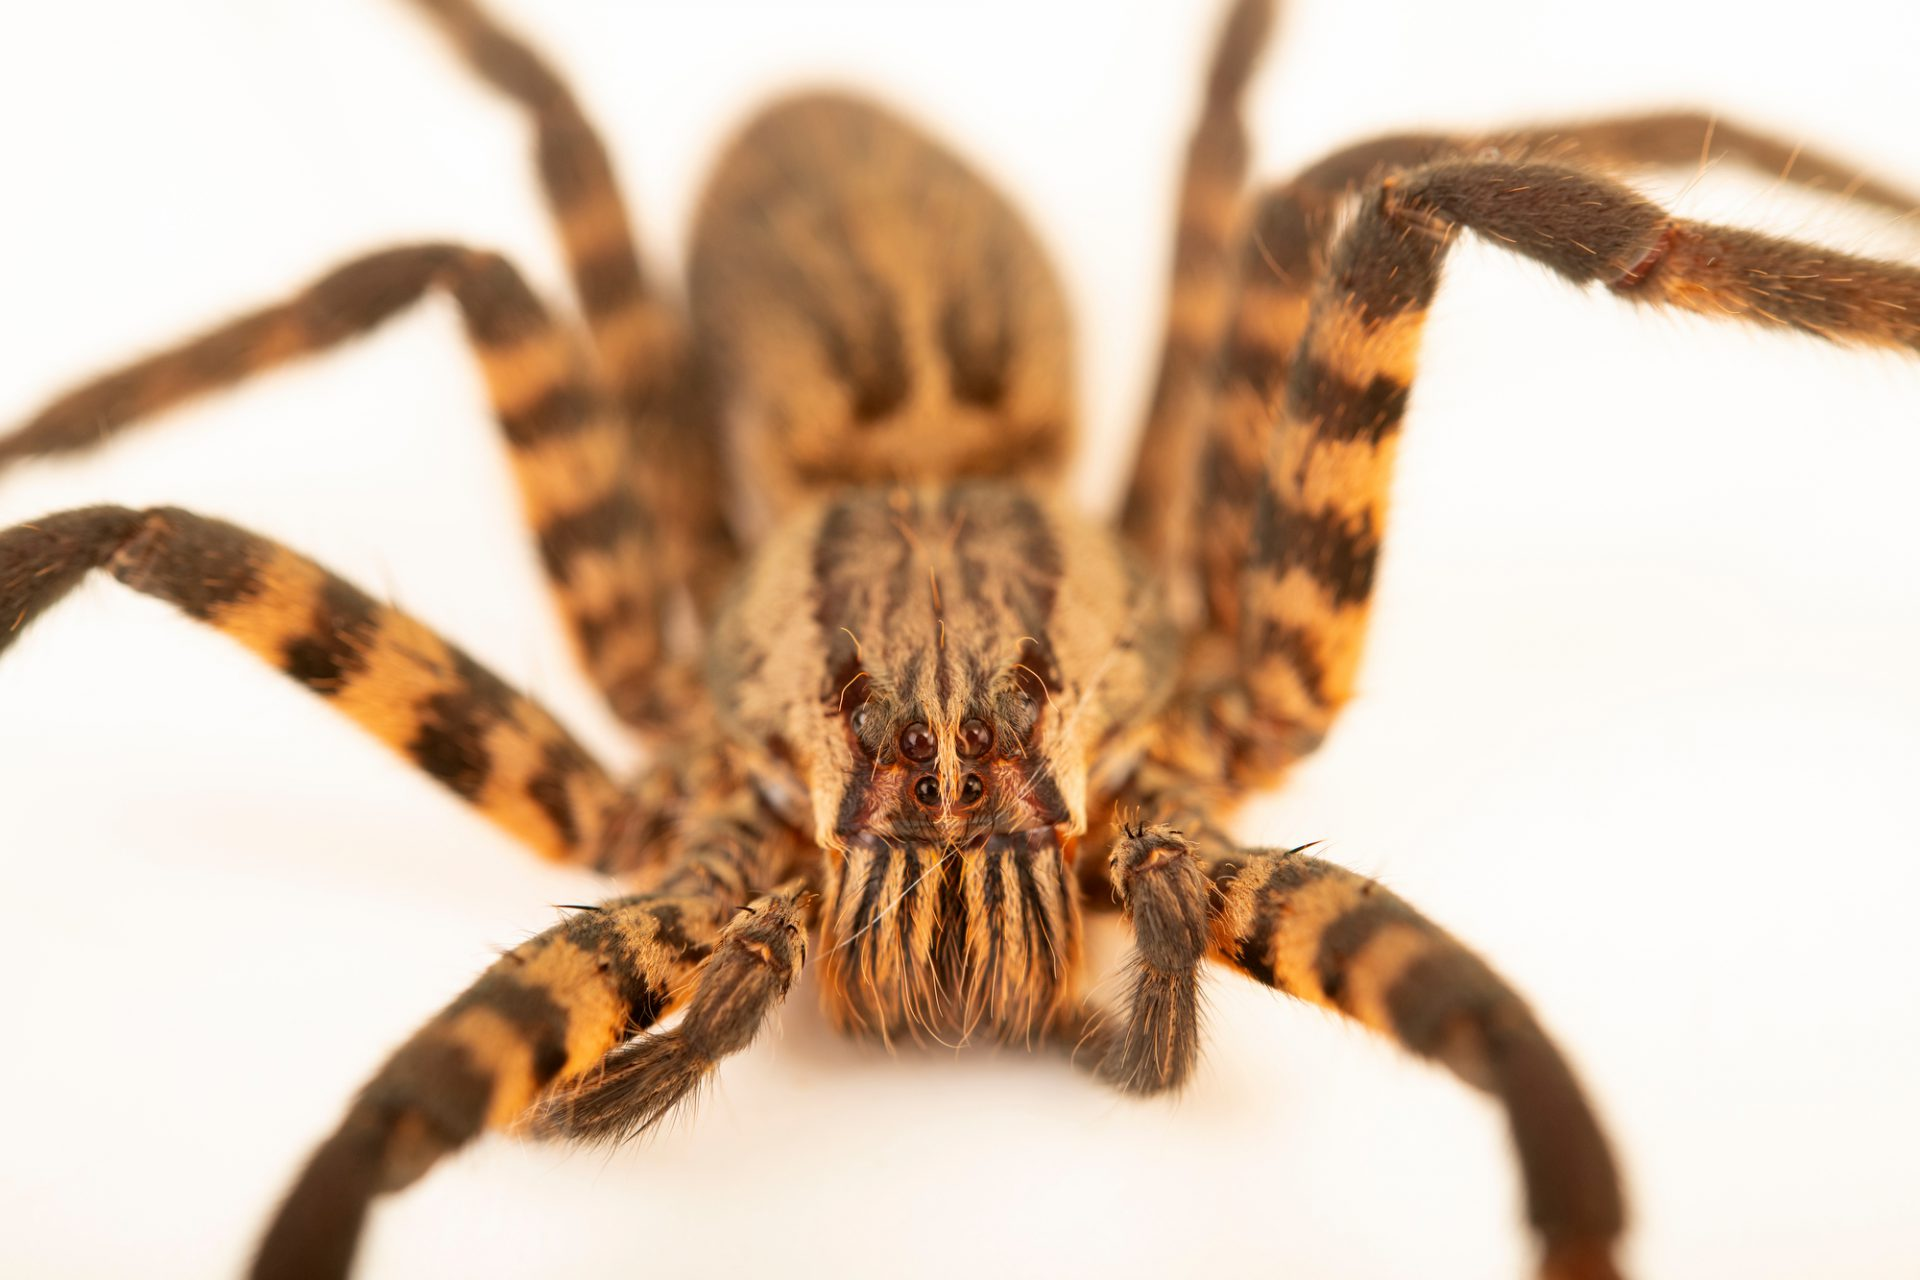 Photo: Tiger wandering spider (Cupiennius salei) at the Moscow Zoo.